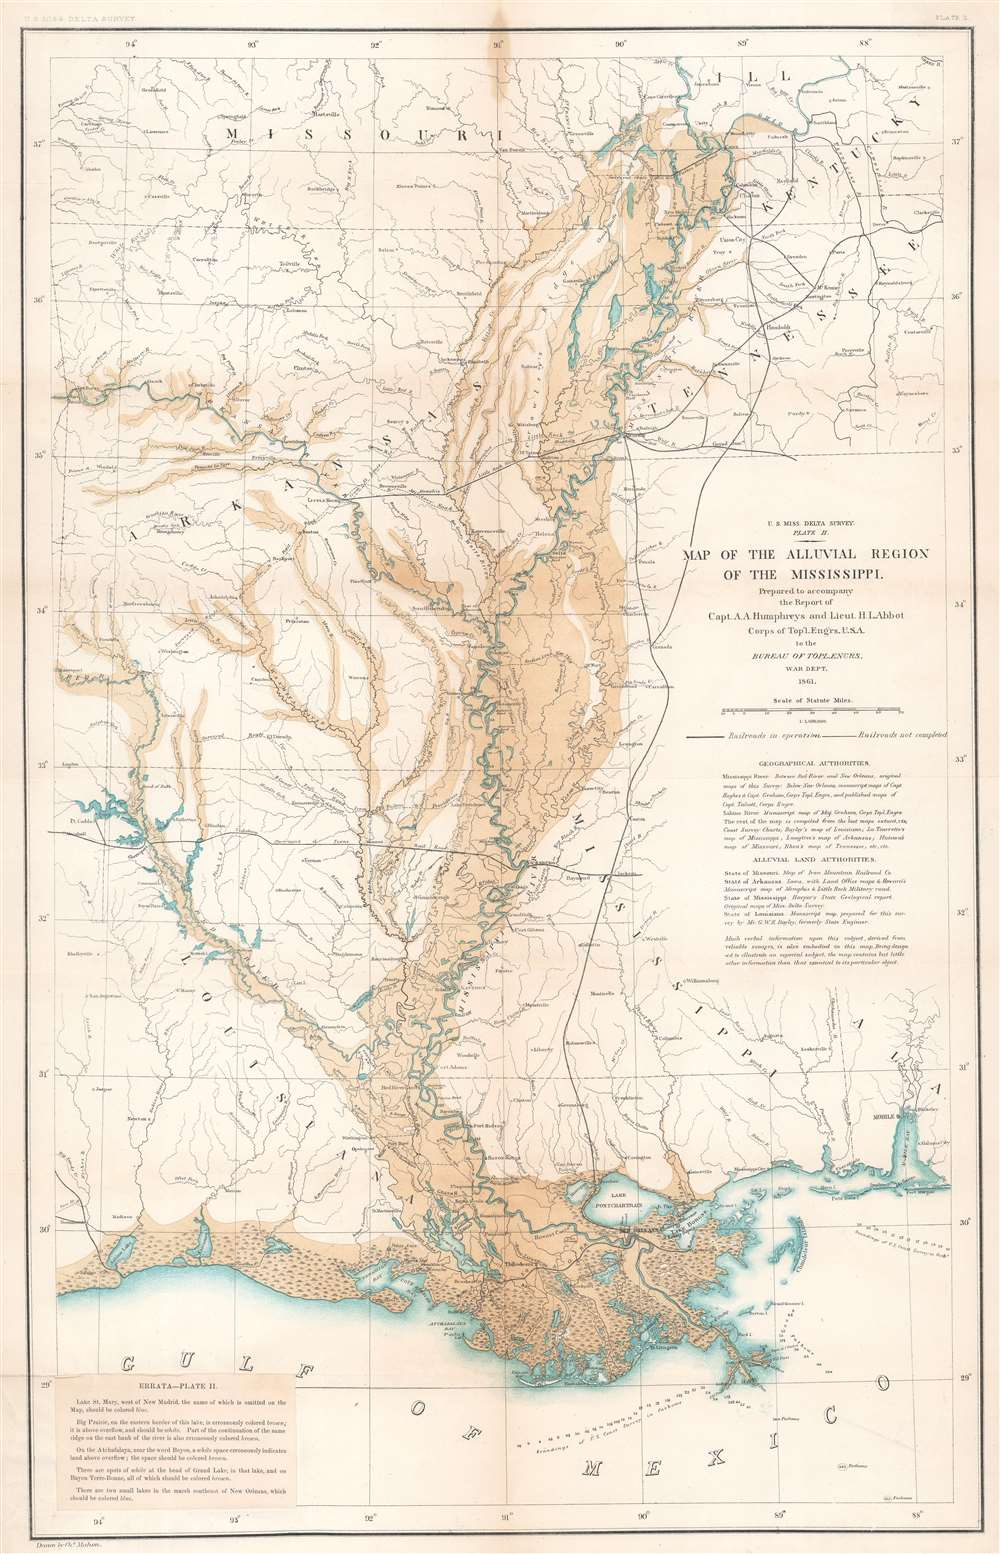 U.S. Miss. Delta Survey. Plate II. Map of the Alluvial Region of the Mississippi. - Main View